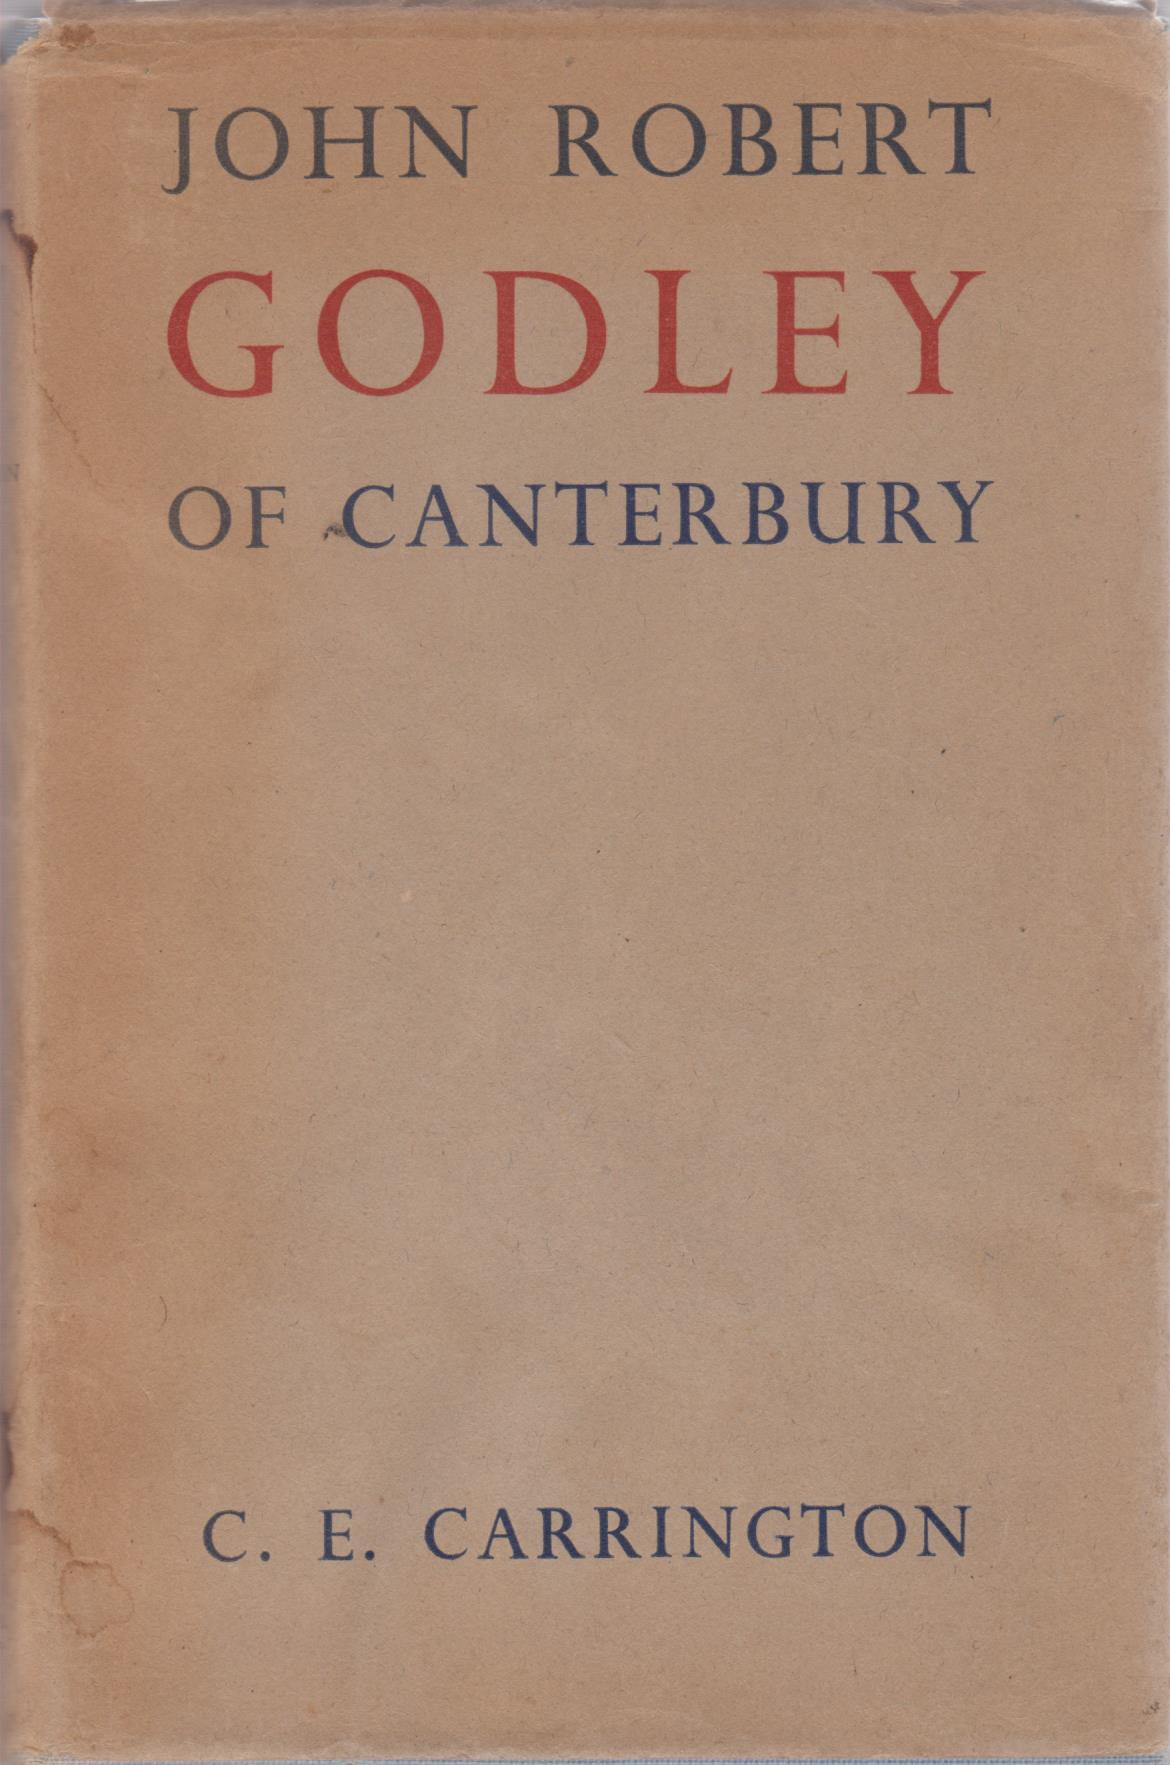 cover image of John Robert Godley of Canterbury for sale in New Zealand